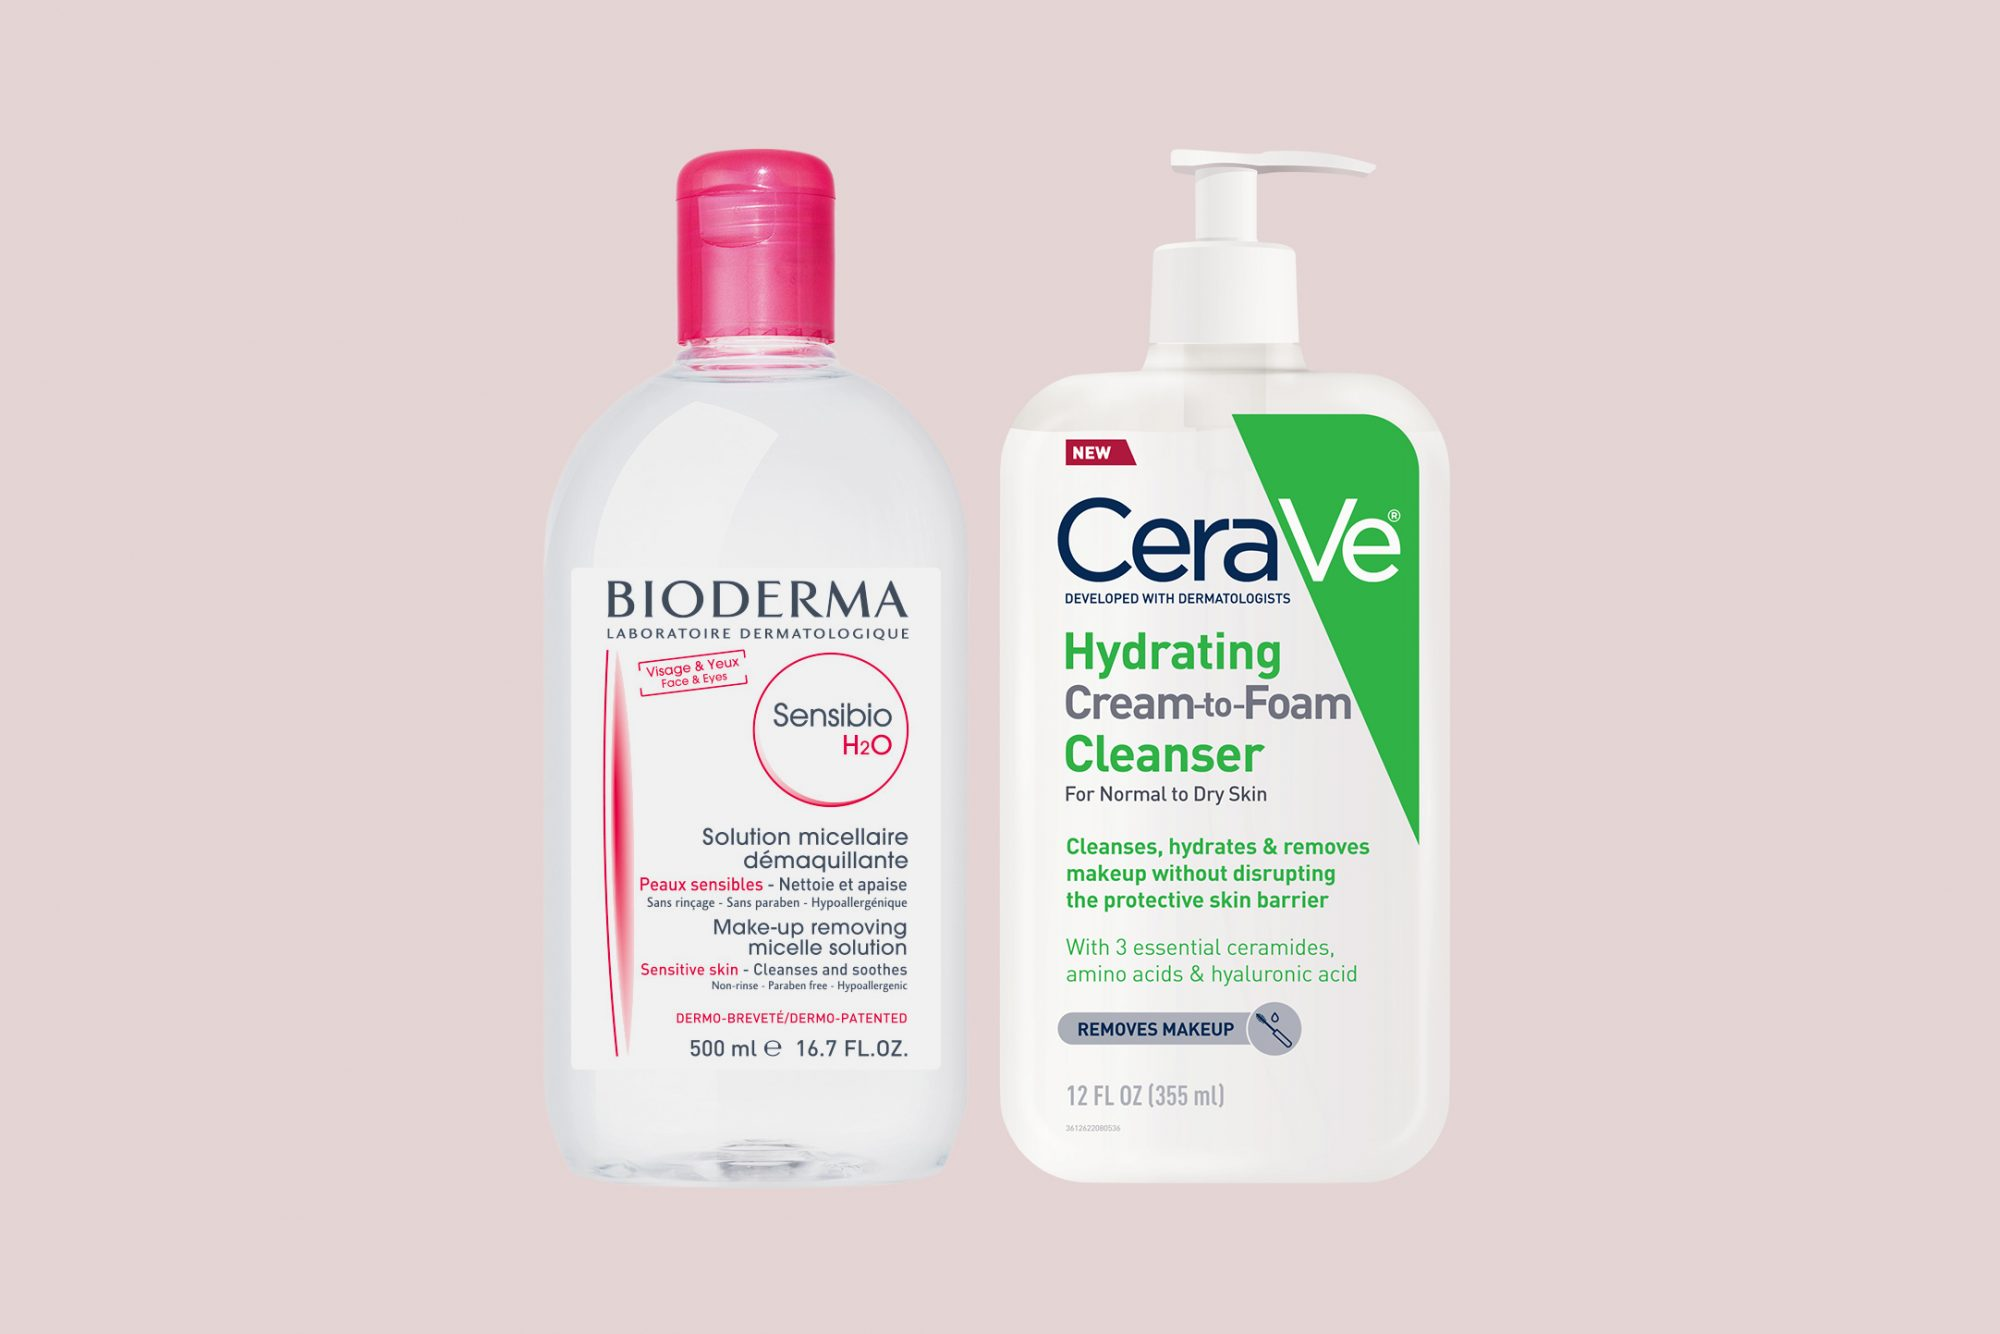 bioderma makeup remover and cerave cleanse